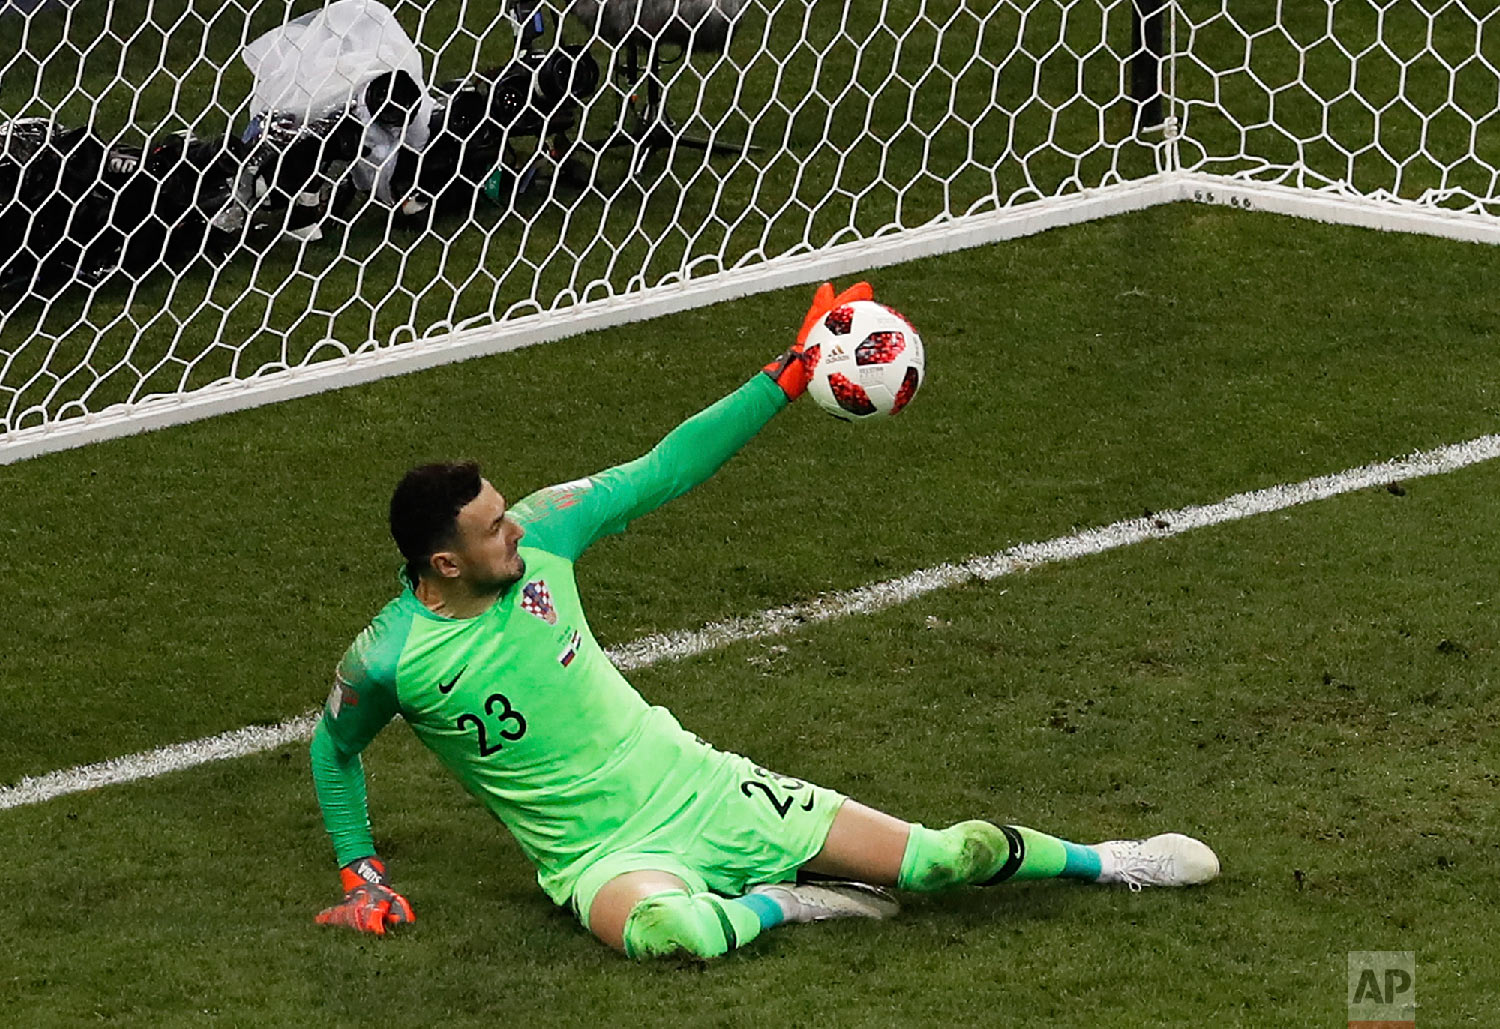 Croatia goalkeeper Danijel Subasic stops a shot from Russia's Fyodor Smolov during a penalty shootout at the end of the quarterfinal match between Russia and Croatia at the 2018 soccer World Cup at the Fisht Stadium in Sochi, Russia, Saturday, July 7, 2018. (AP Photo/Alexander Zemlianichenko)